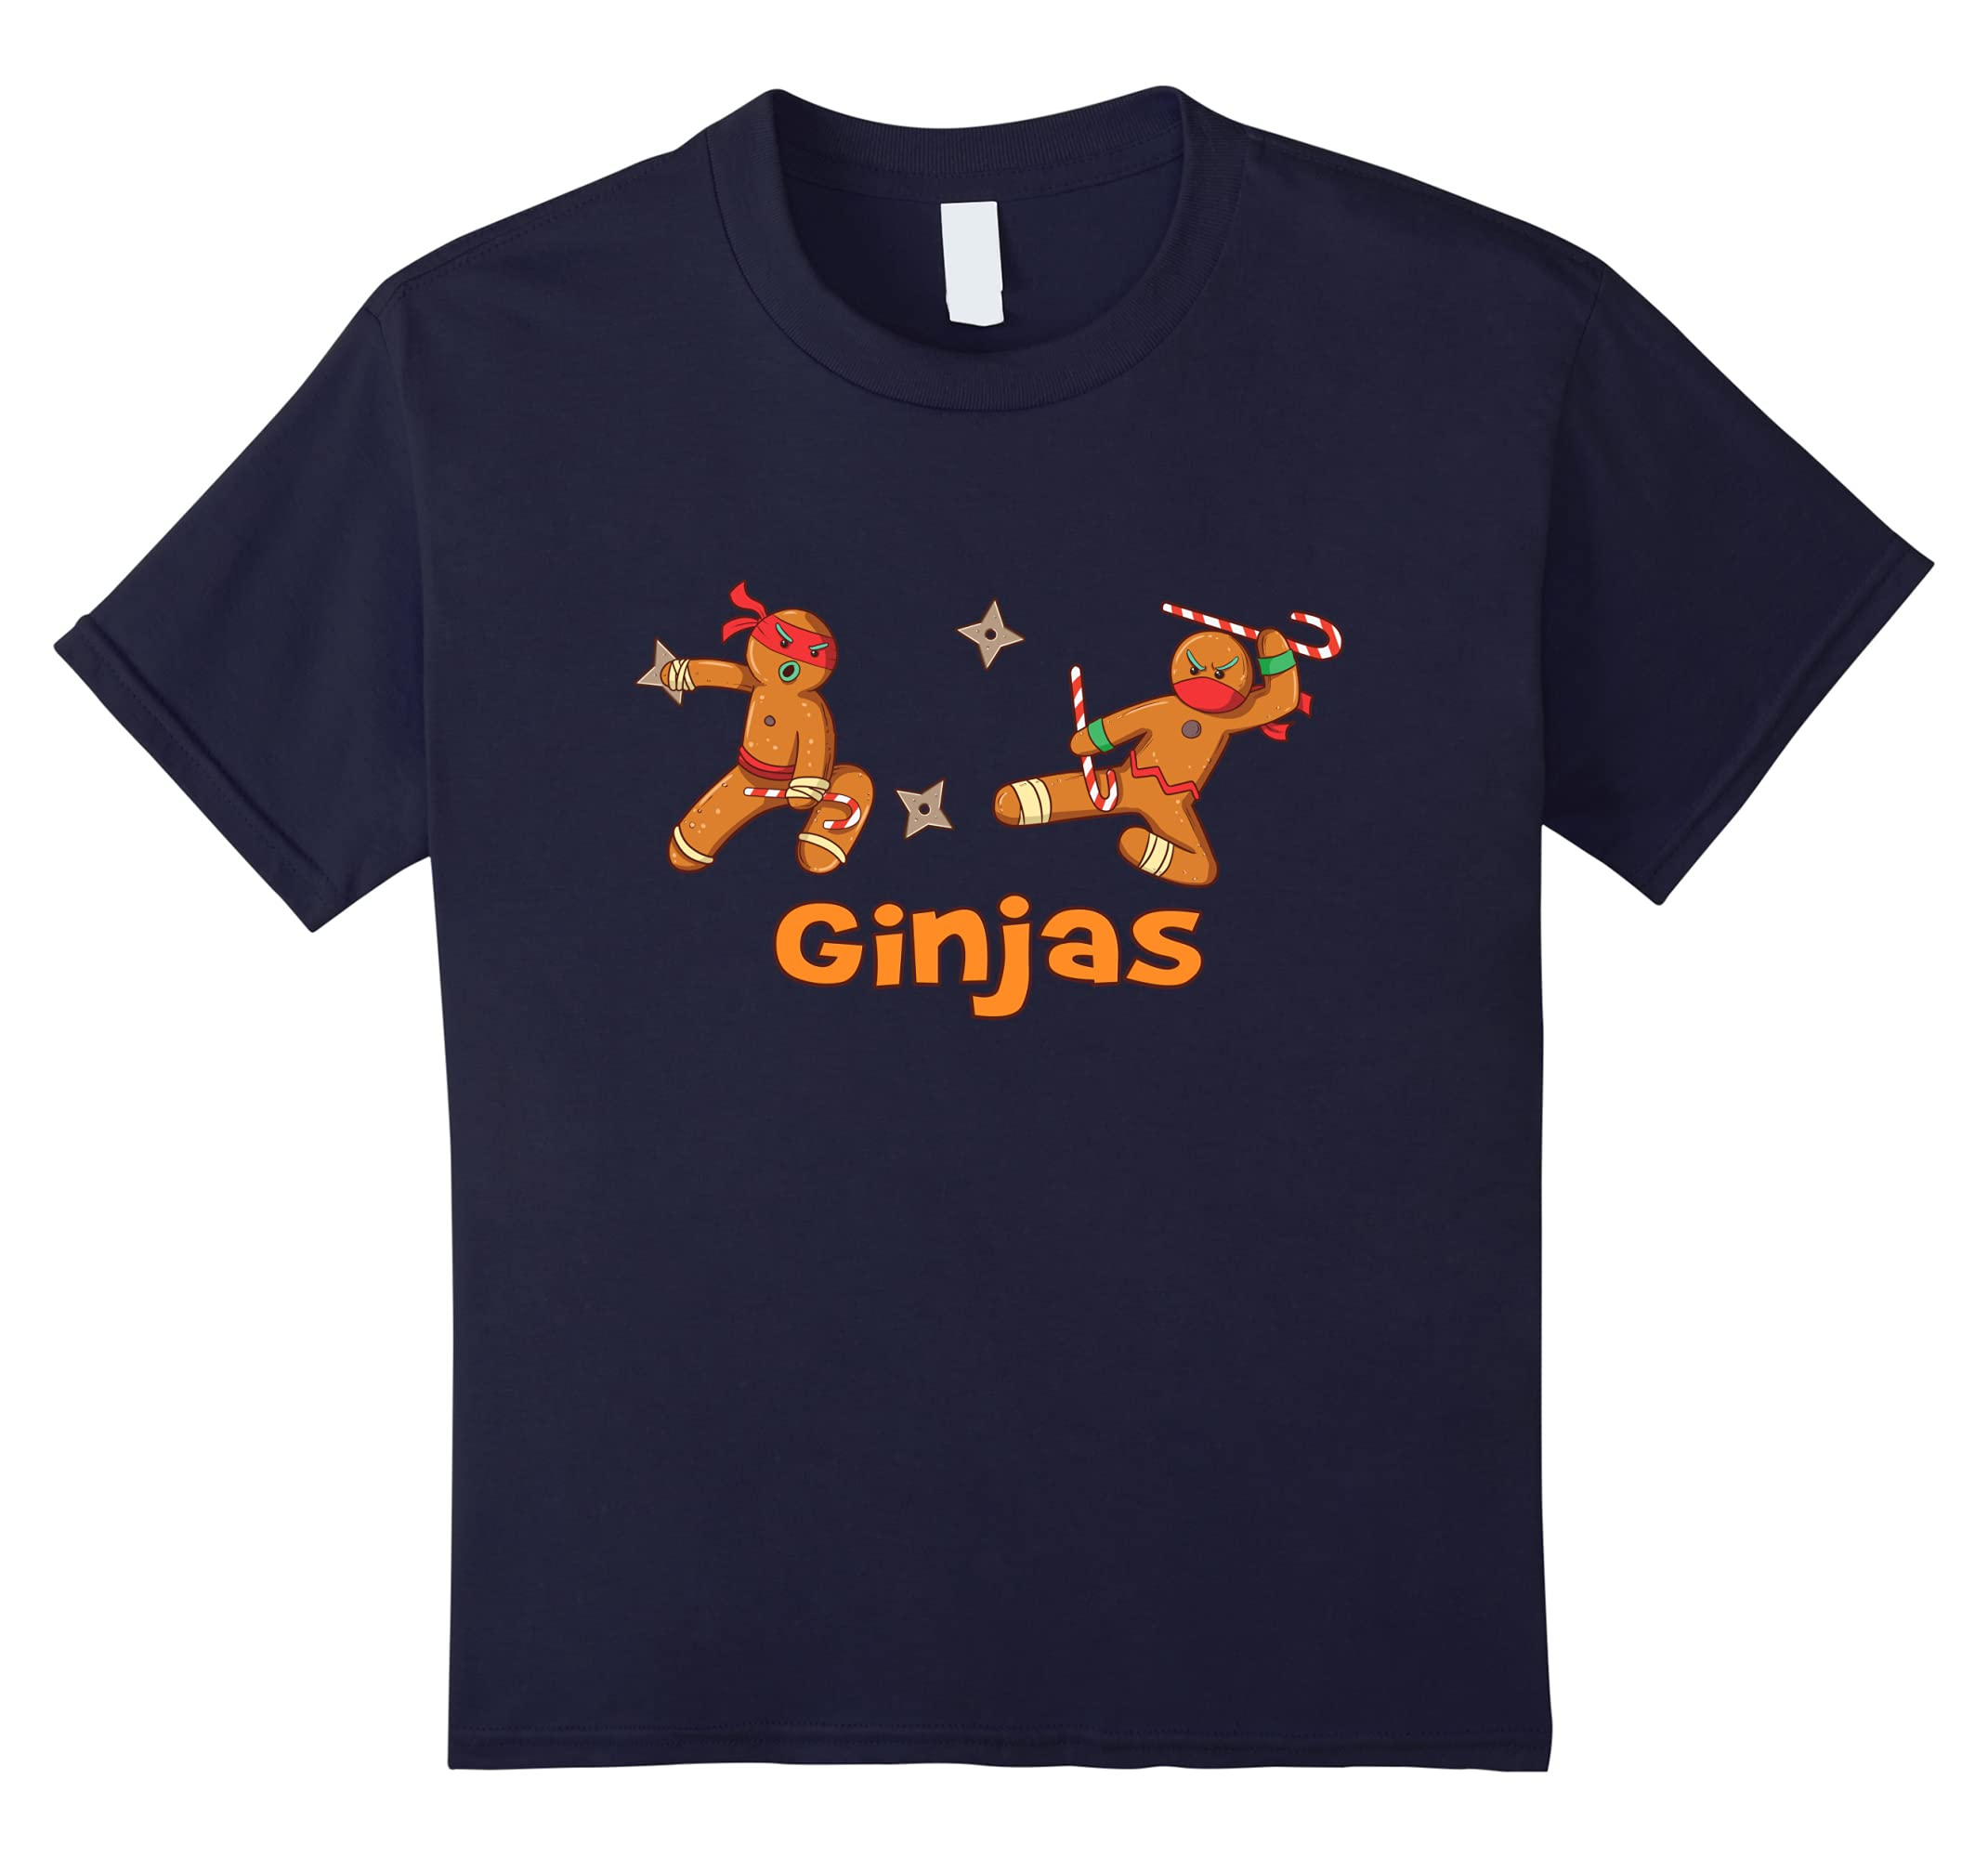 Ginjas Kids T shirt Mens Womens-Xalozy